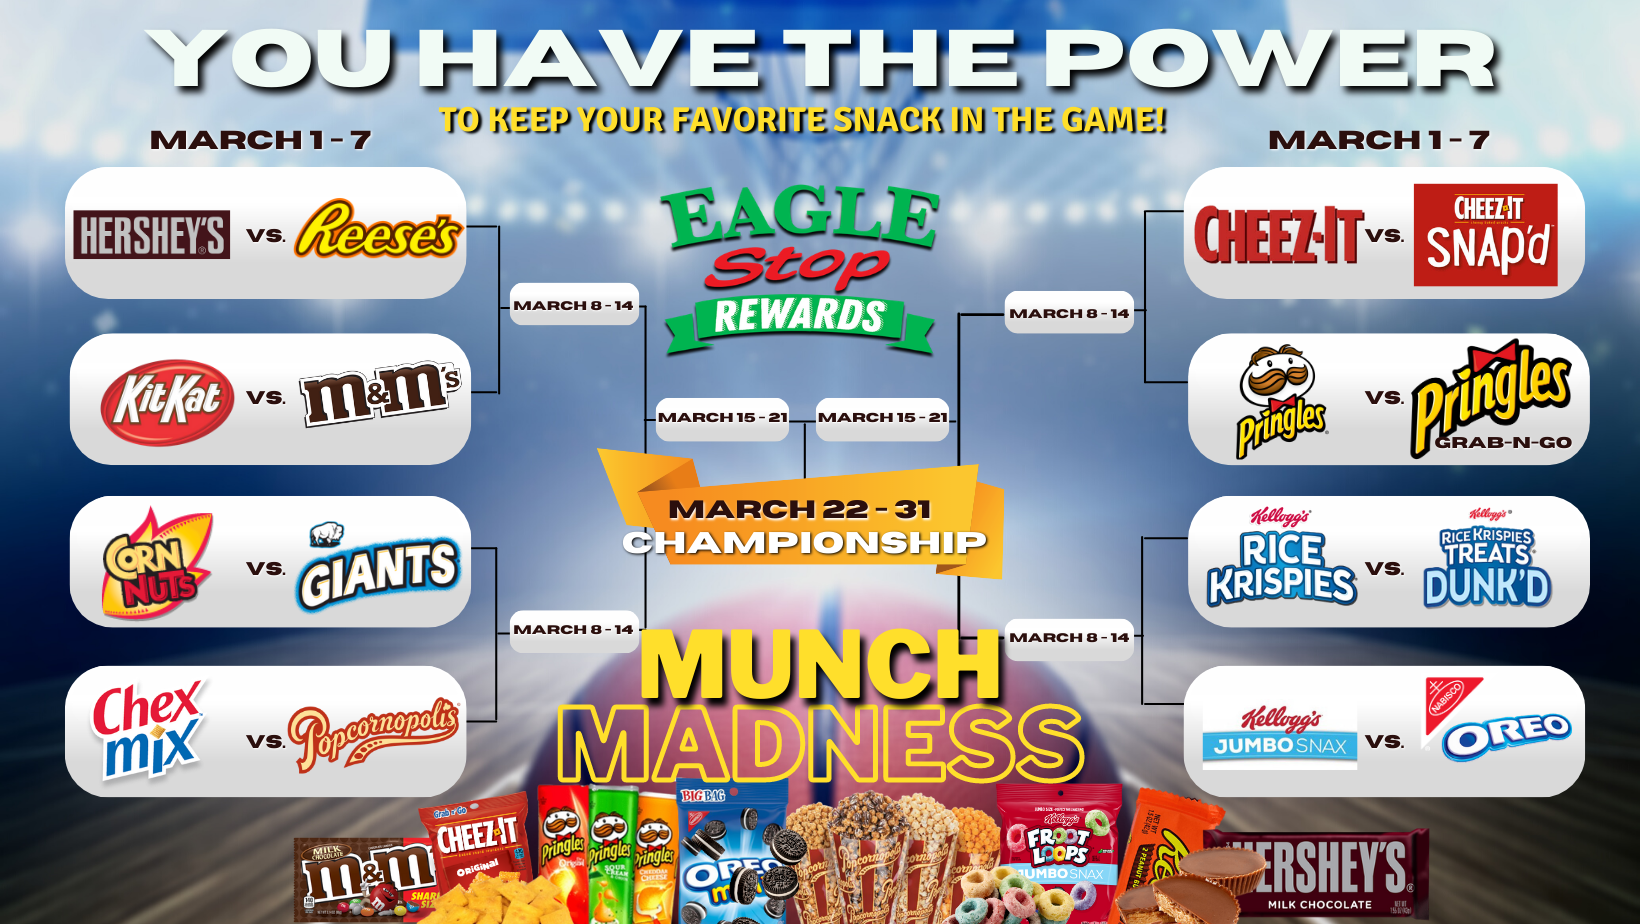 The Snacks with the MOST redemptions move to the next round!